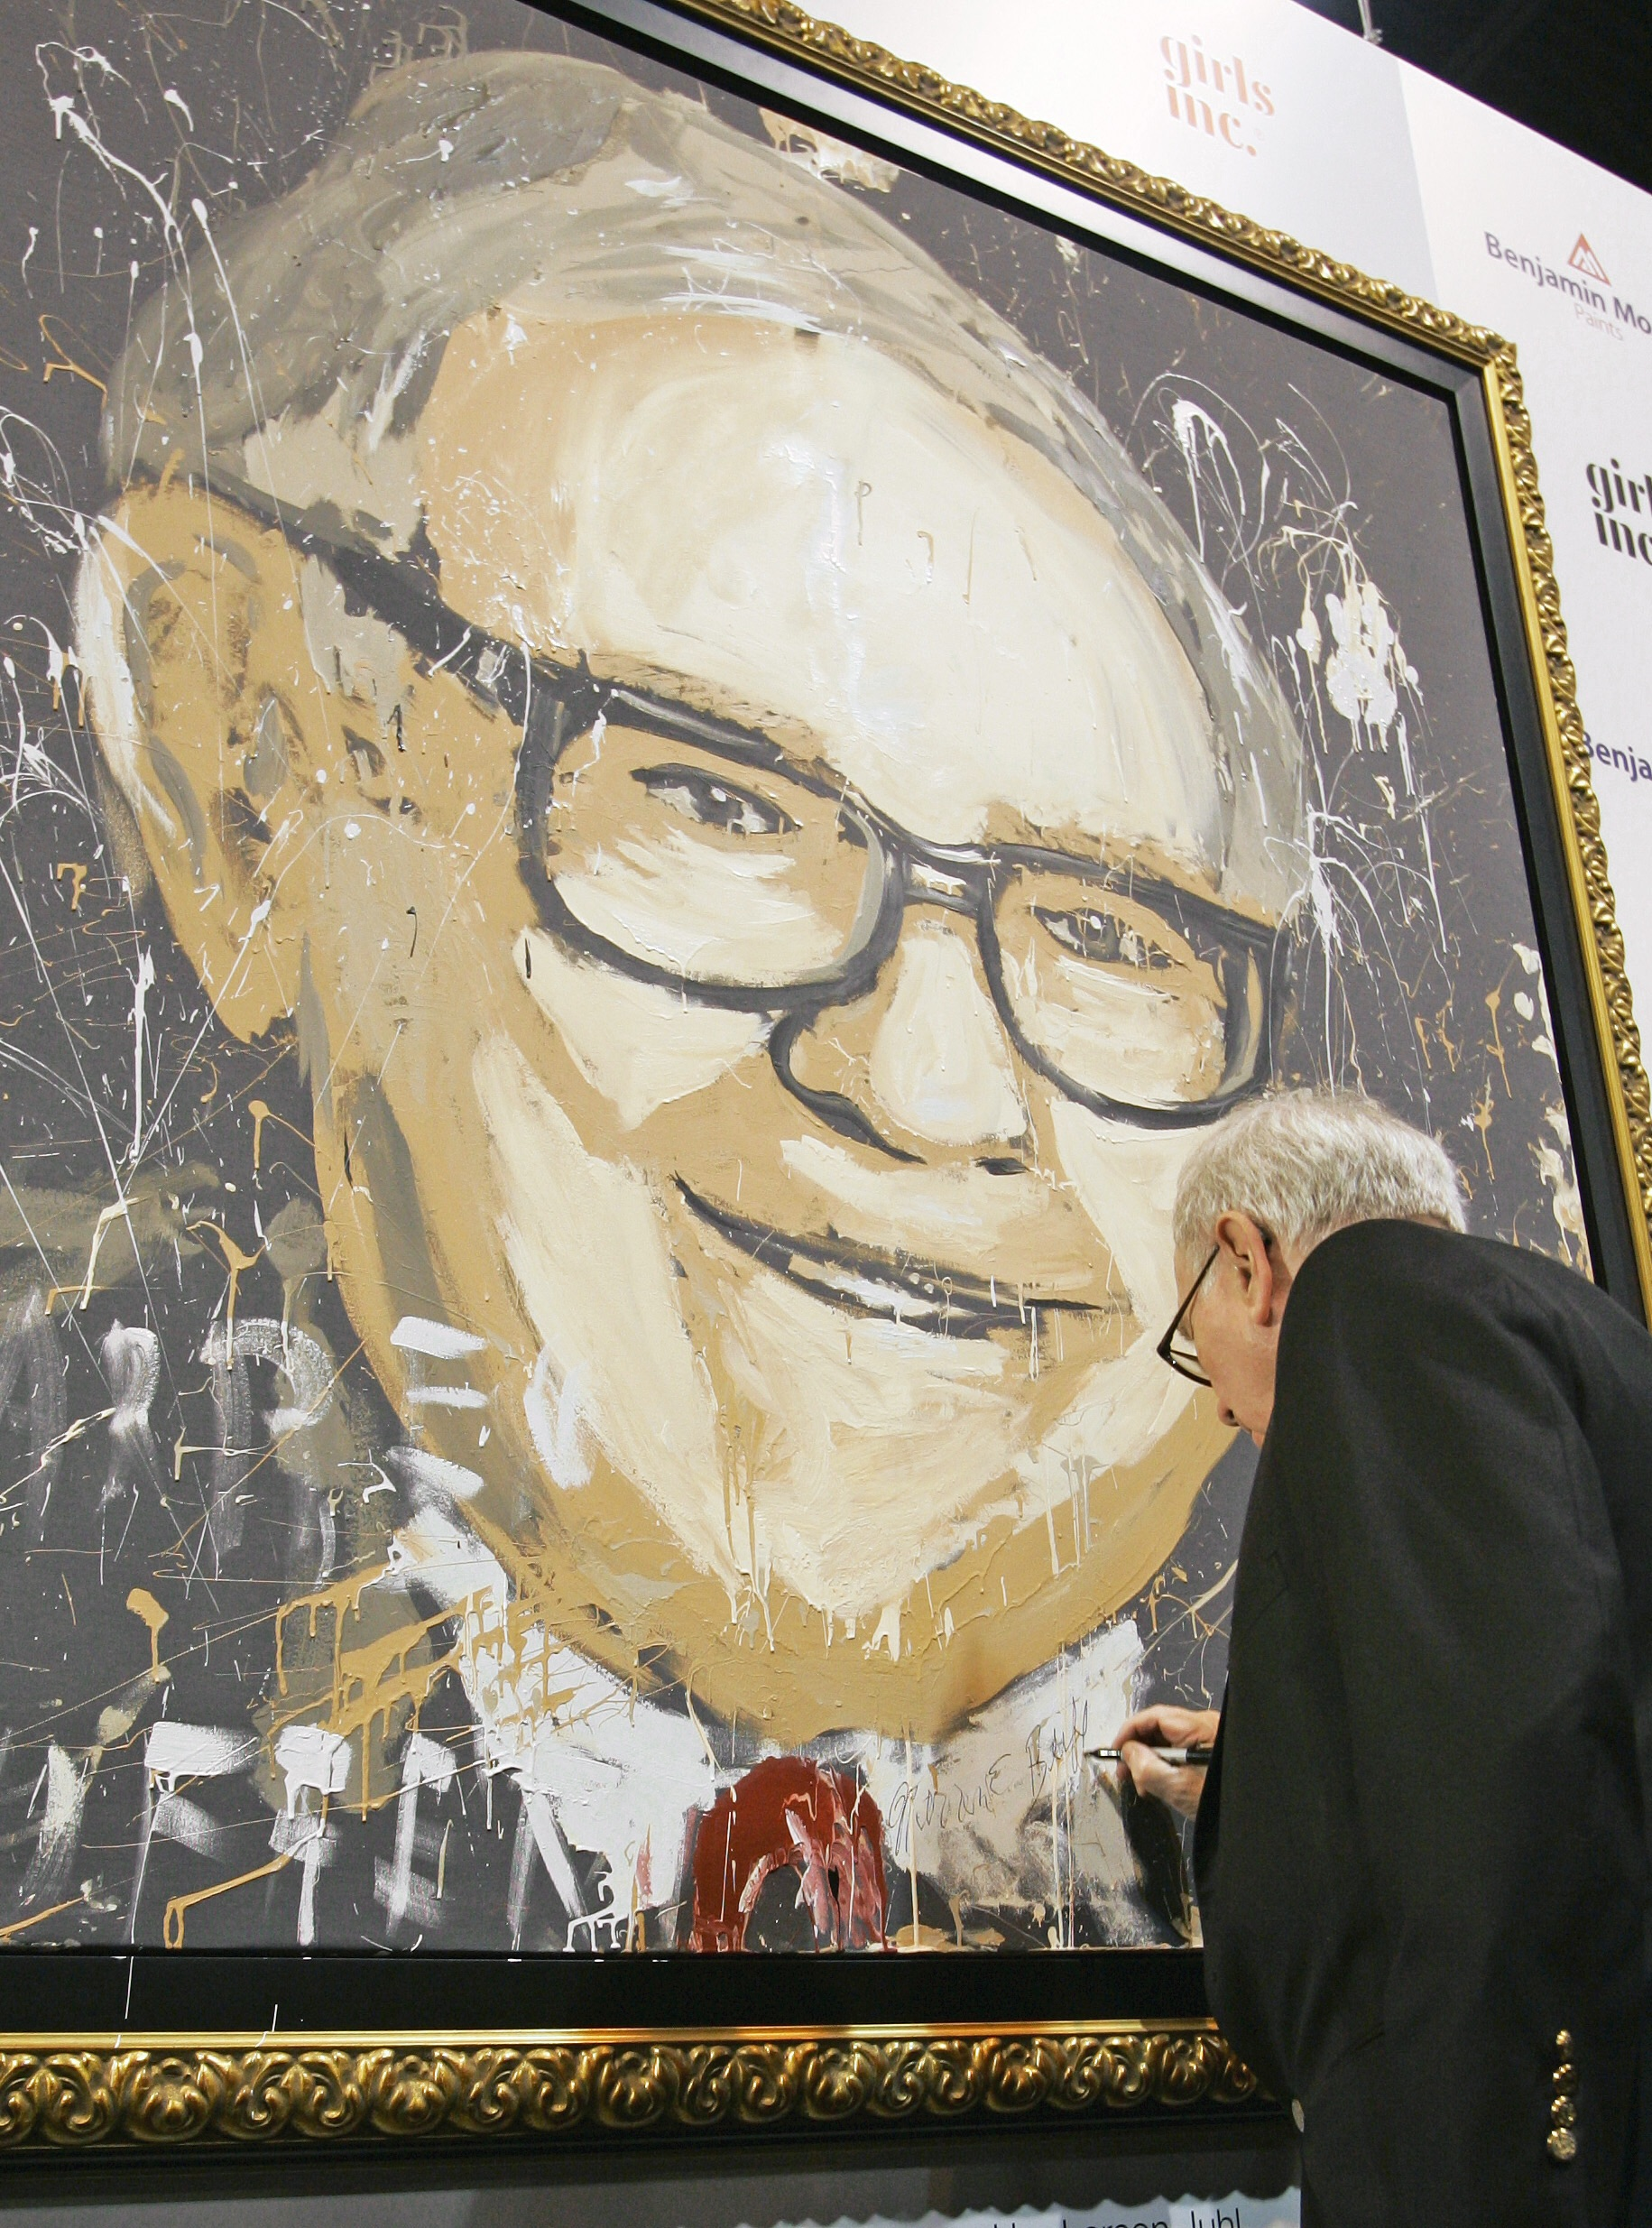 Warren Buffett signs a portrait of himself at the annual Berkshire Hathaway shareholders meeting, in Omaha, Nebraska on May 3, 2008.